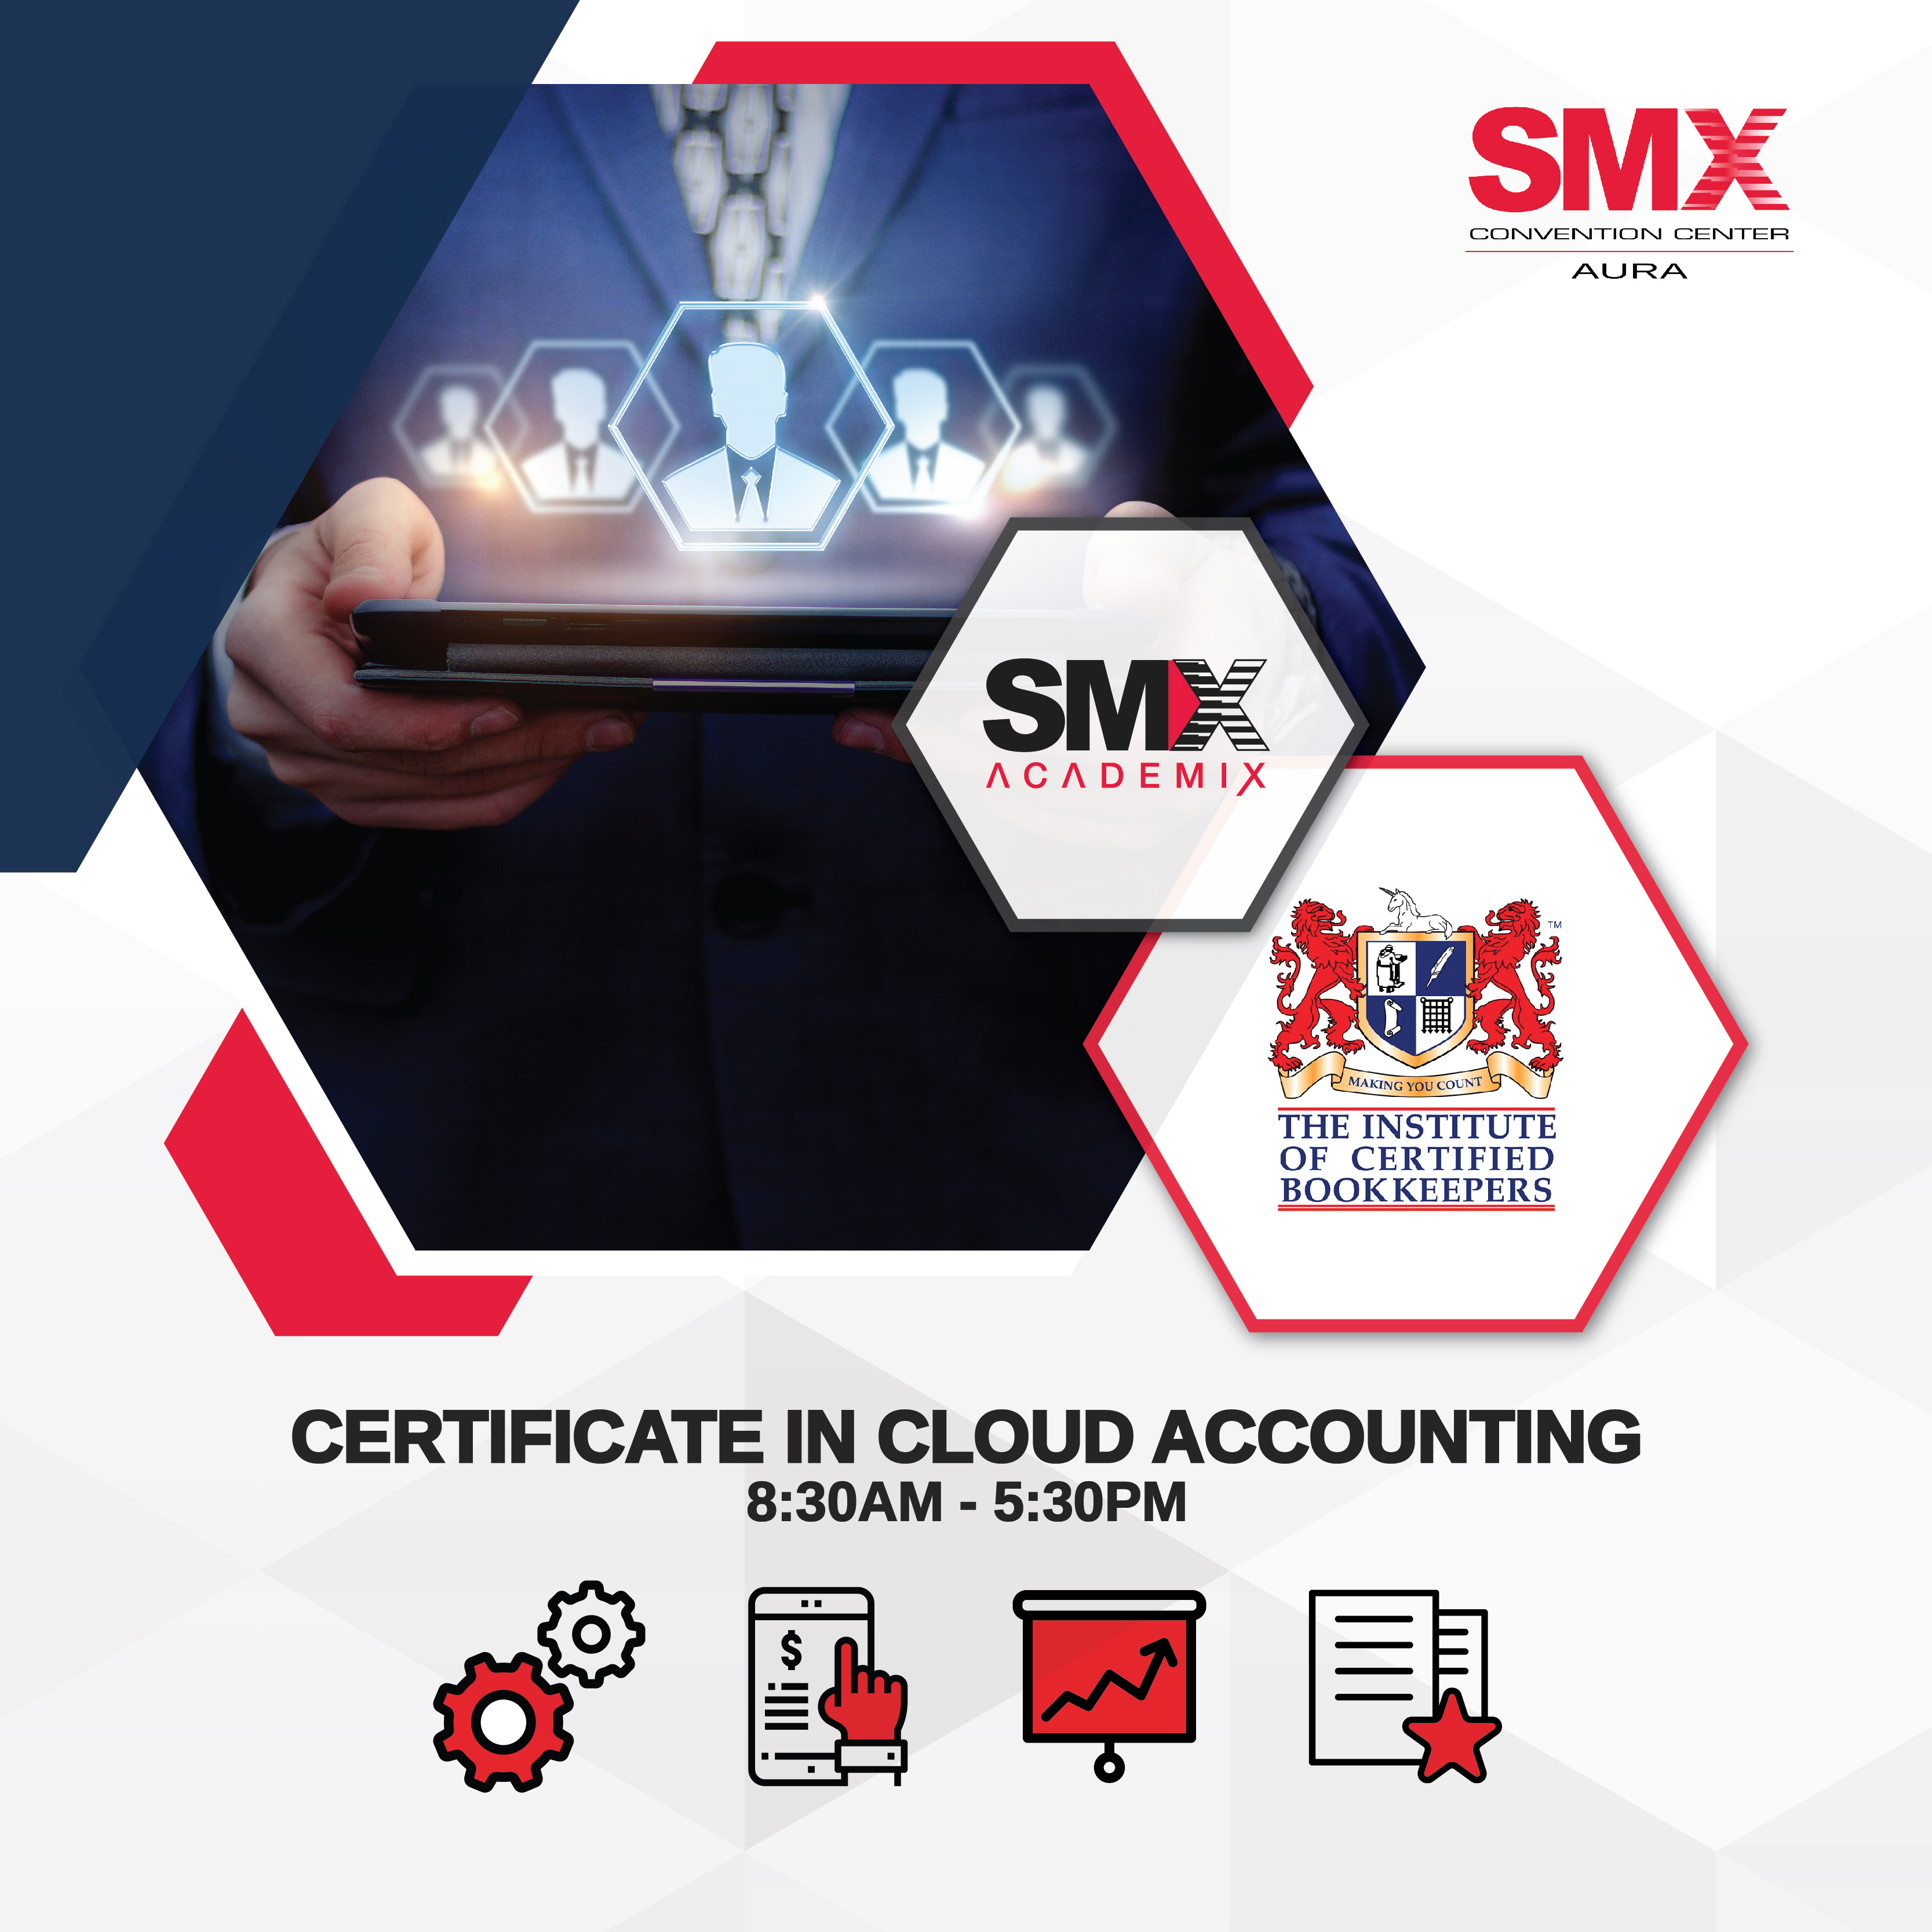 Certificate in Cloud Accounting